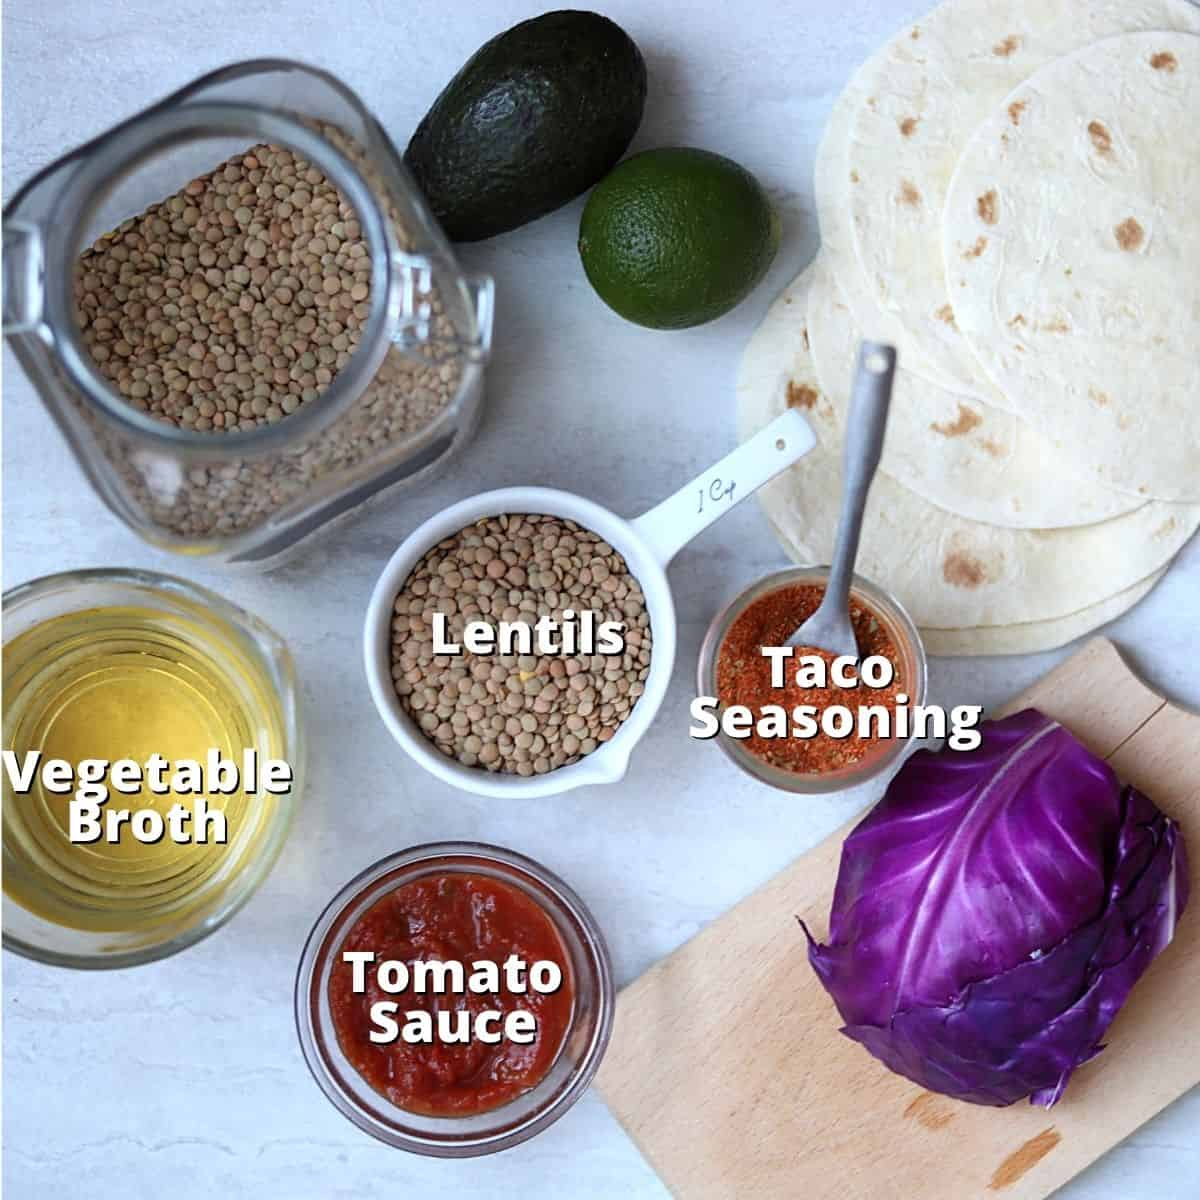 Ingredients for lentil taco meat labled on counter.